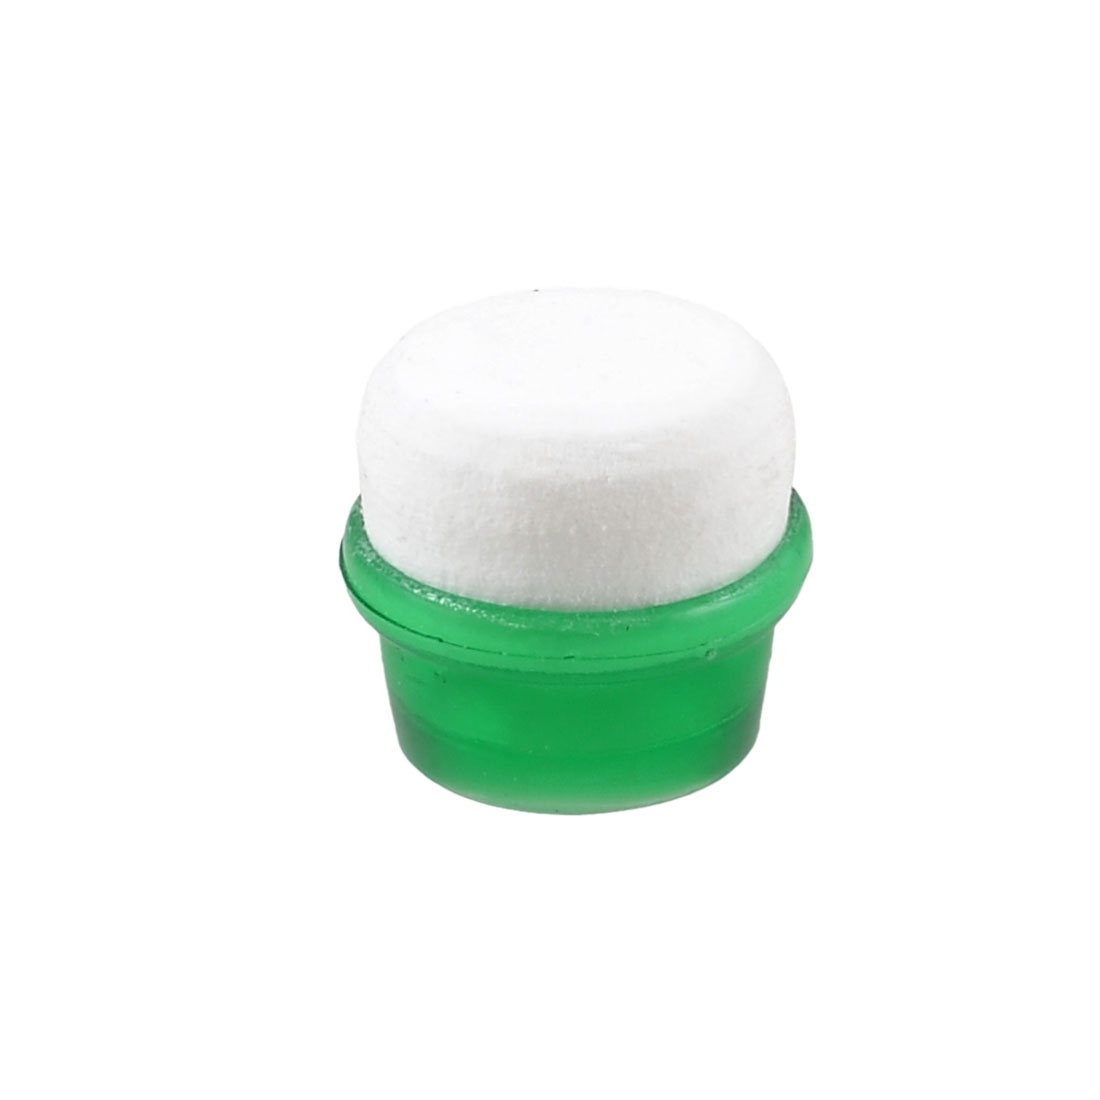 15mm Inlet Diameter Green Plastic PVA Foam Water Purifying Faucet Filter